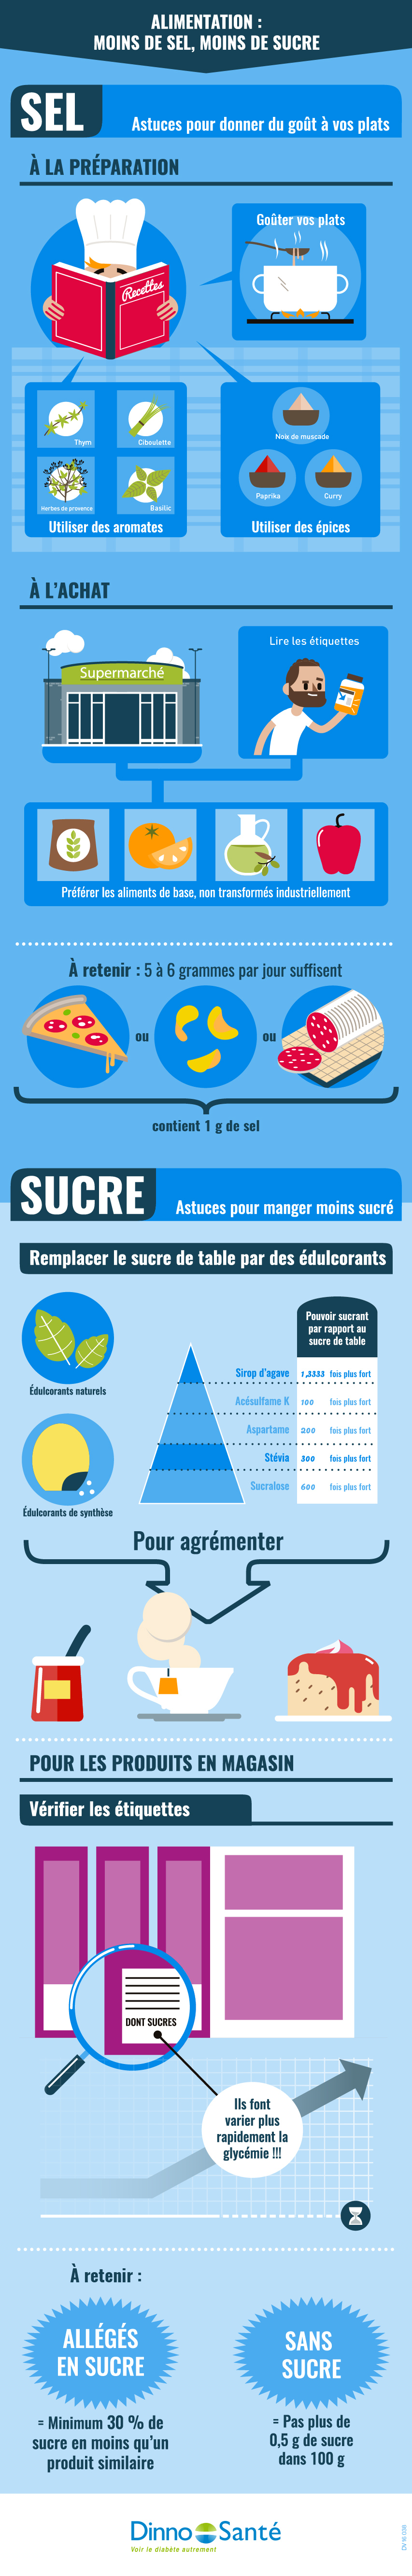 infographie alimentation moins de sel et moins de sucre. Black Bedroom Furniture Sets. Home Design Ideas